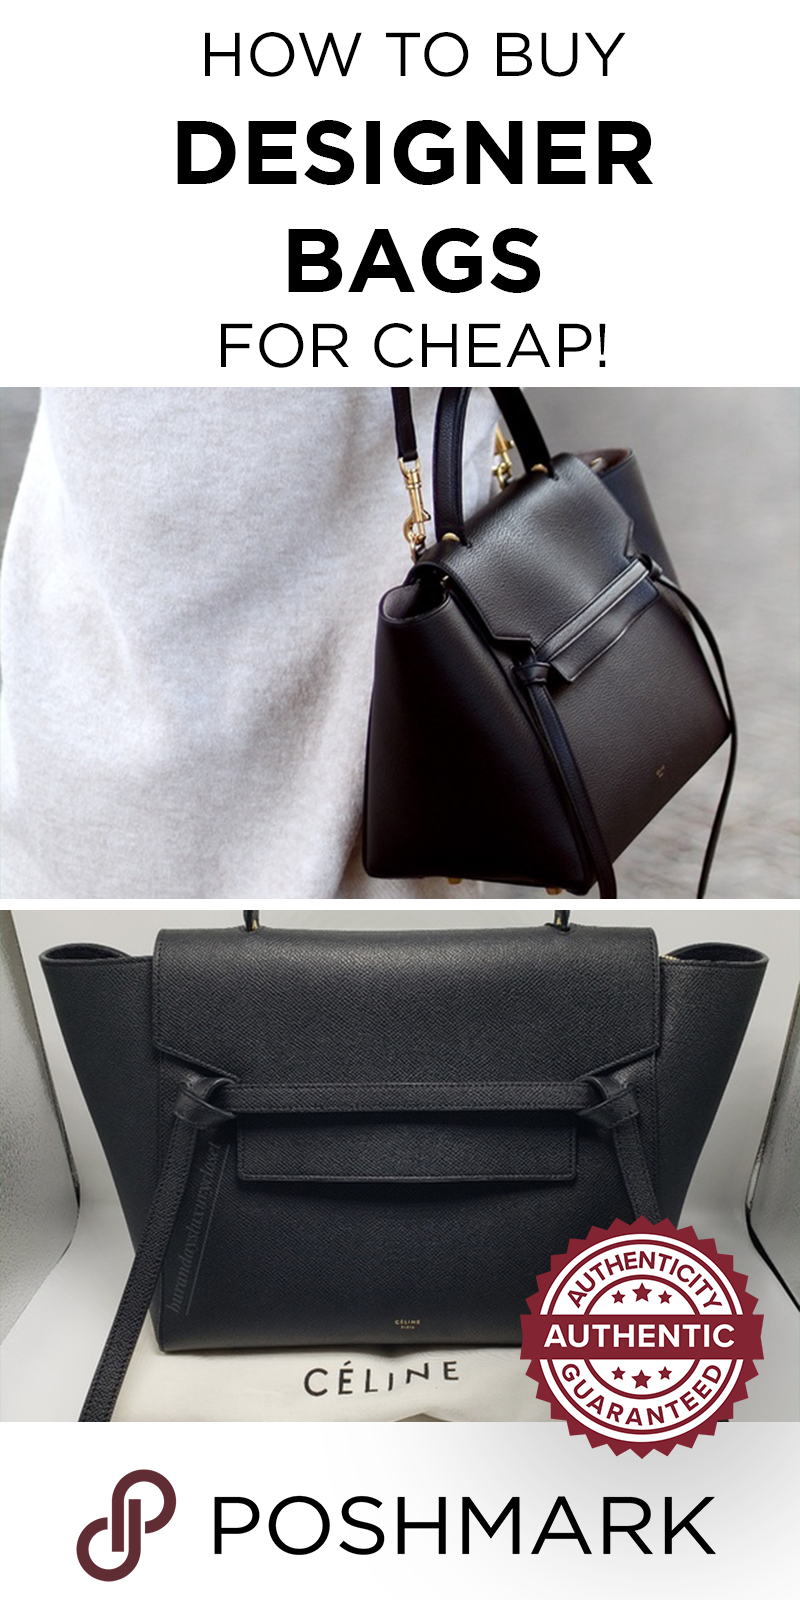 Find Authentic Celine And Other Designer Bags Up To 70 Off On Poshmark